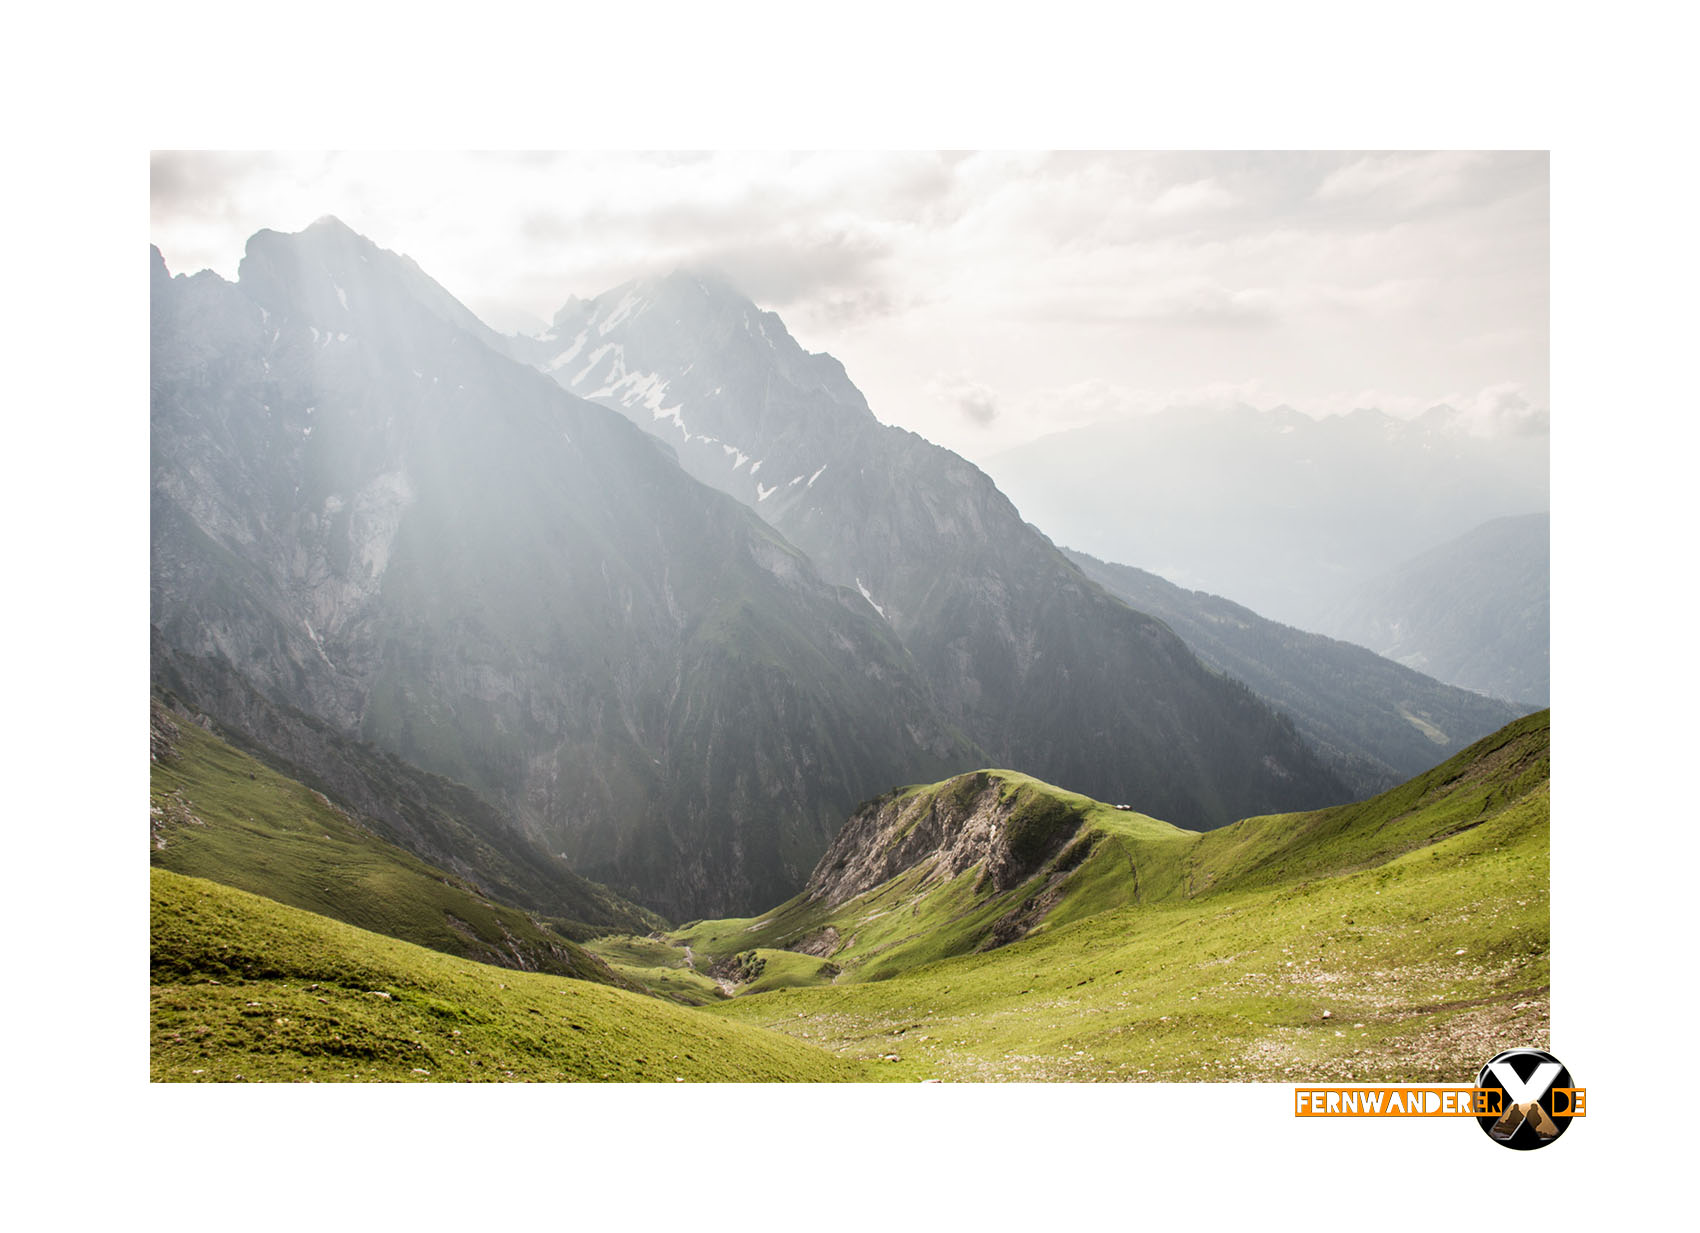 [:de]Landschaftsfotografie in den Lechtaler Alpen um den Augsburger Höhenweg[:en] Landscape photography in the Lechtal Alps around the Augsburger Hoehenweg[:]